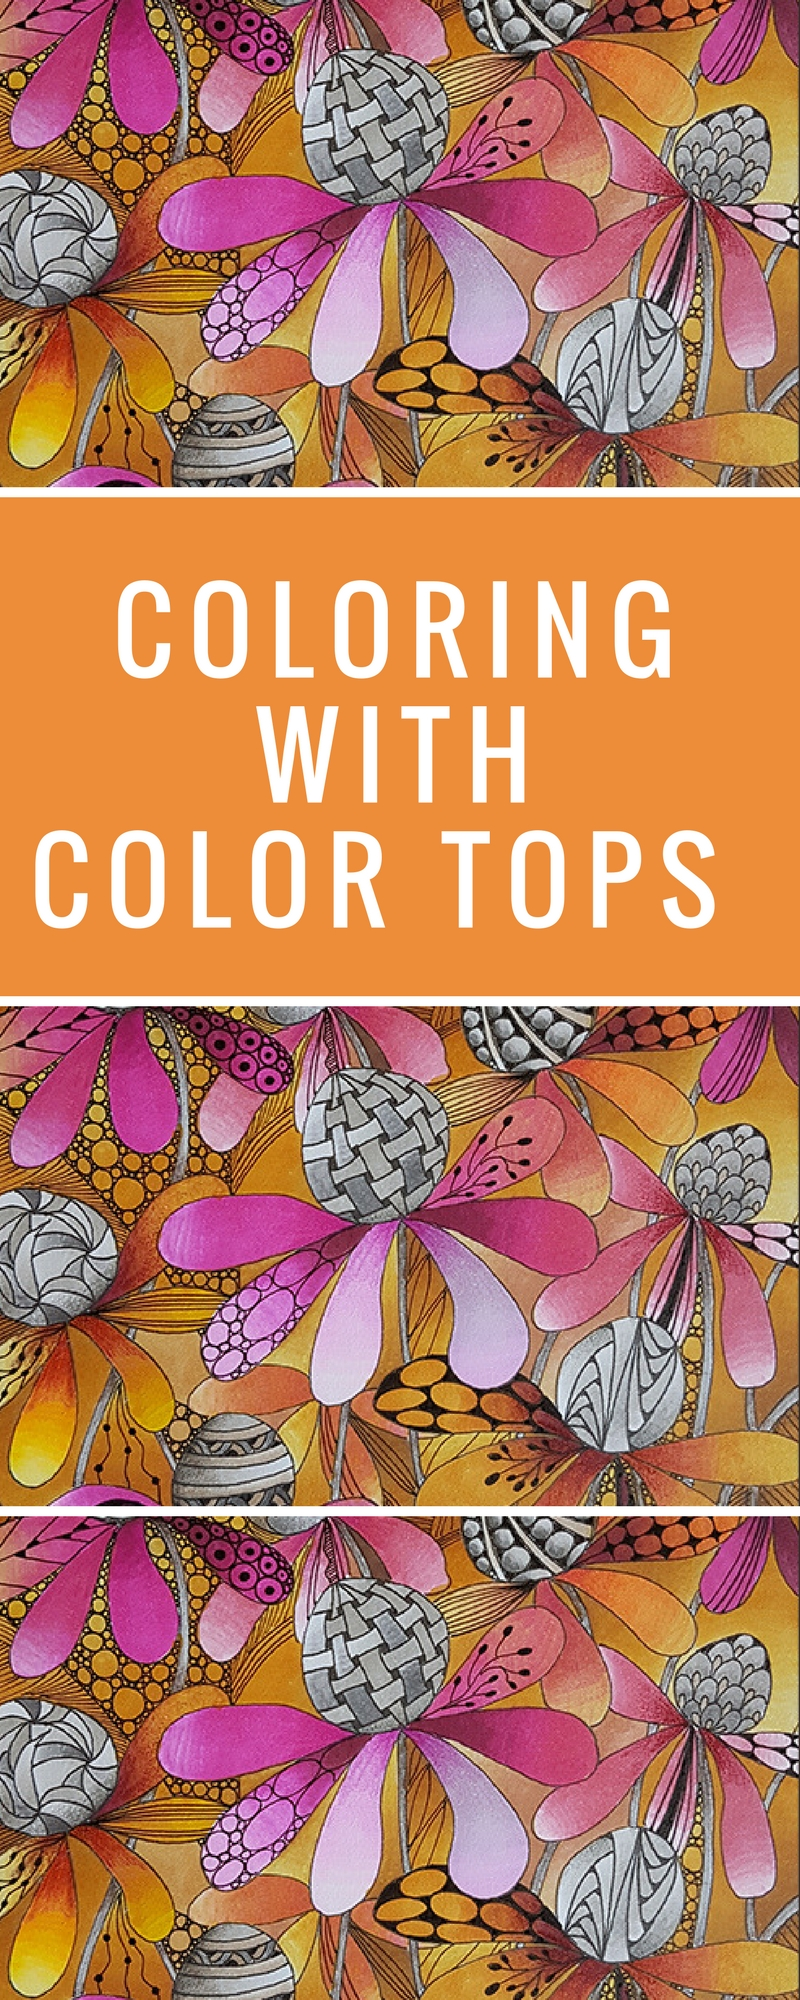 Coloring | Coloring Cards | Featuring Chameleon Color Tops | Designed by Betty Hung | Creative Scrapbooker Magazine